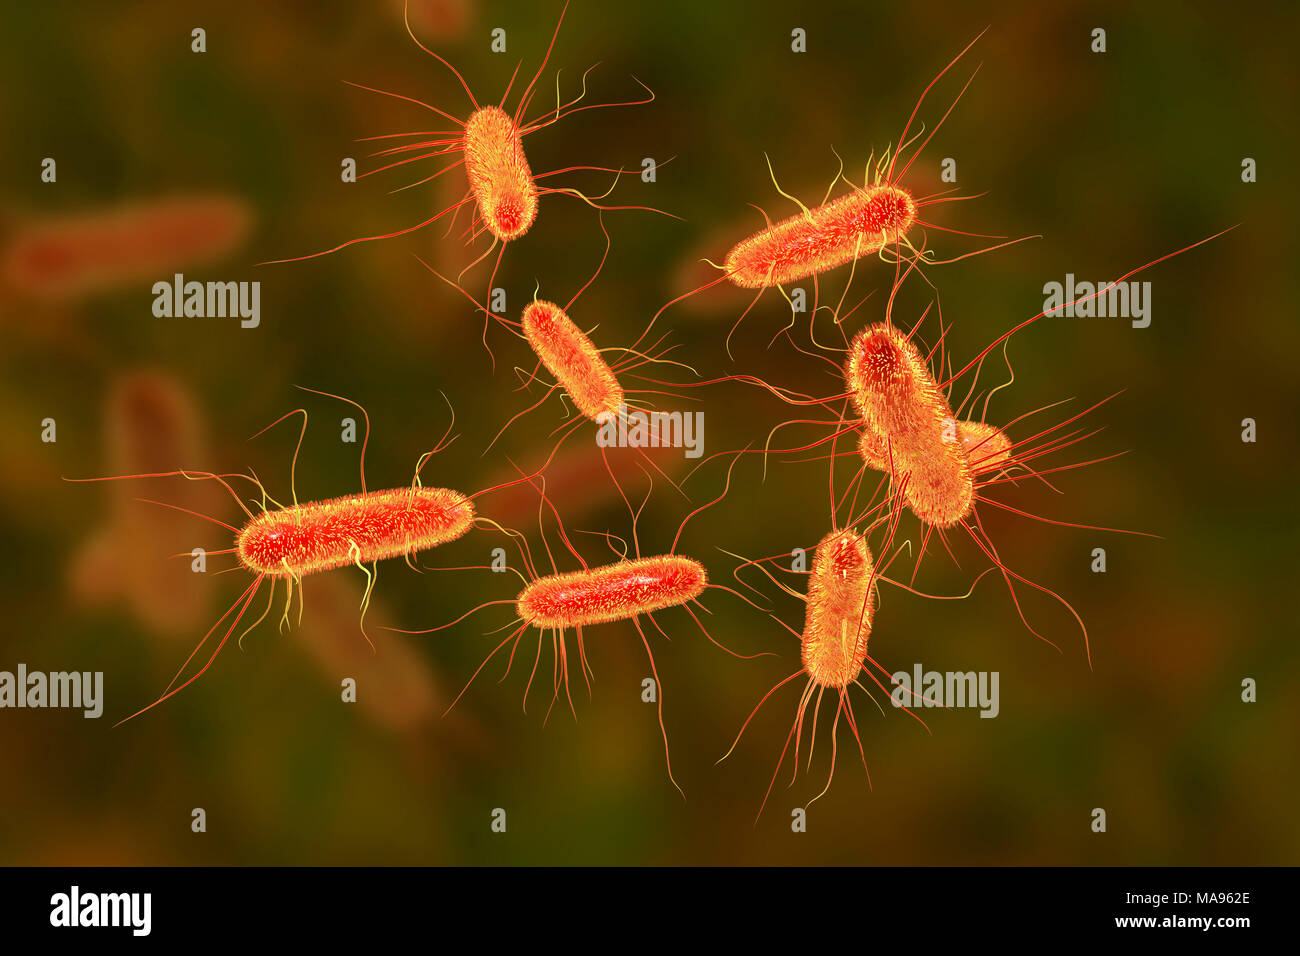 Fimbriae Stock Photos Images Alamy In This Illustration The Prokaryotic Cell Is Rod Shaped Circular Computer Of Escherichia Coli Bacteria E